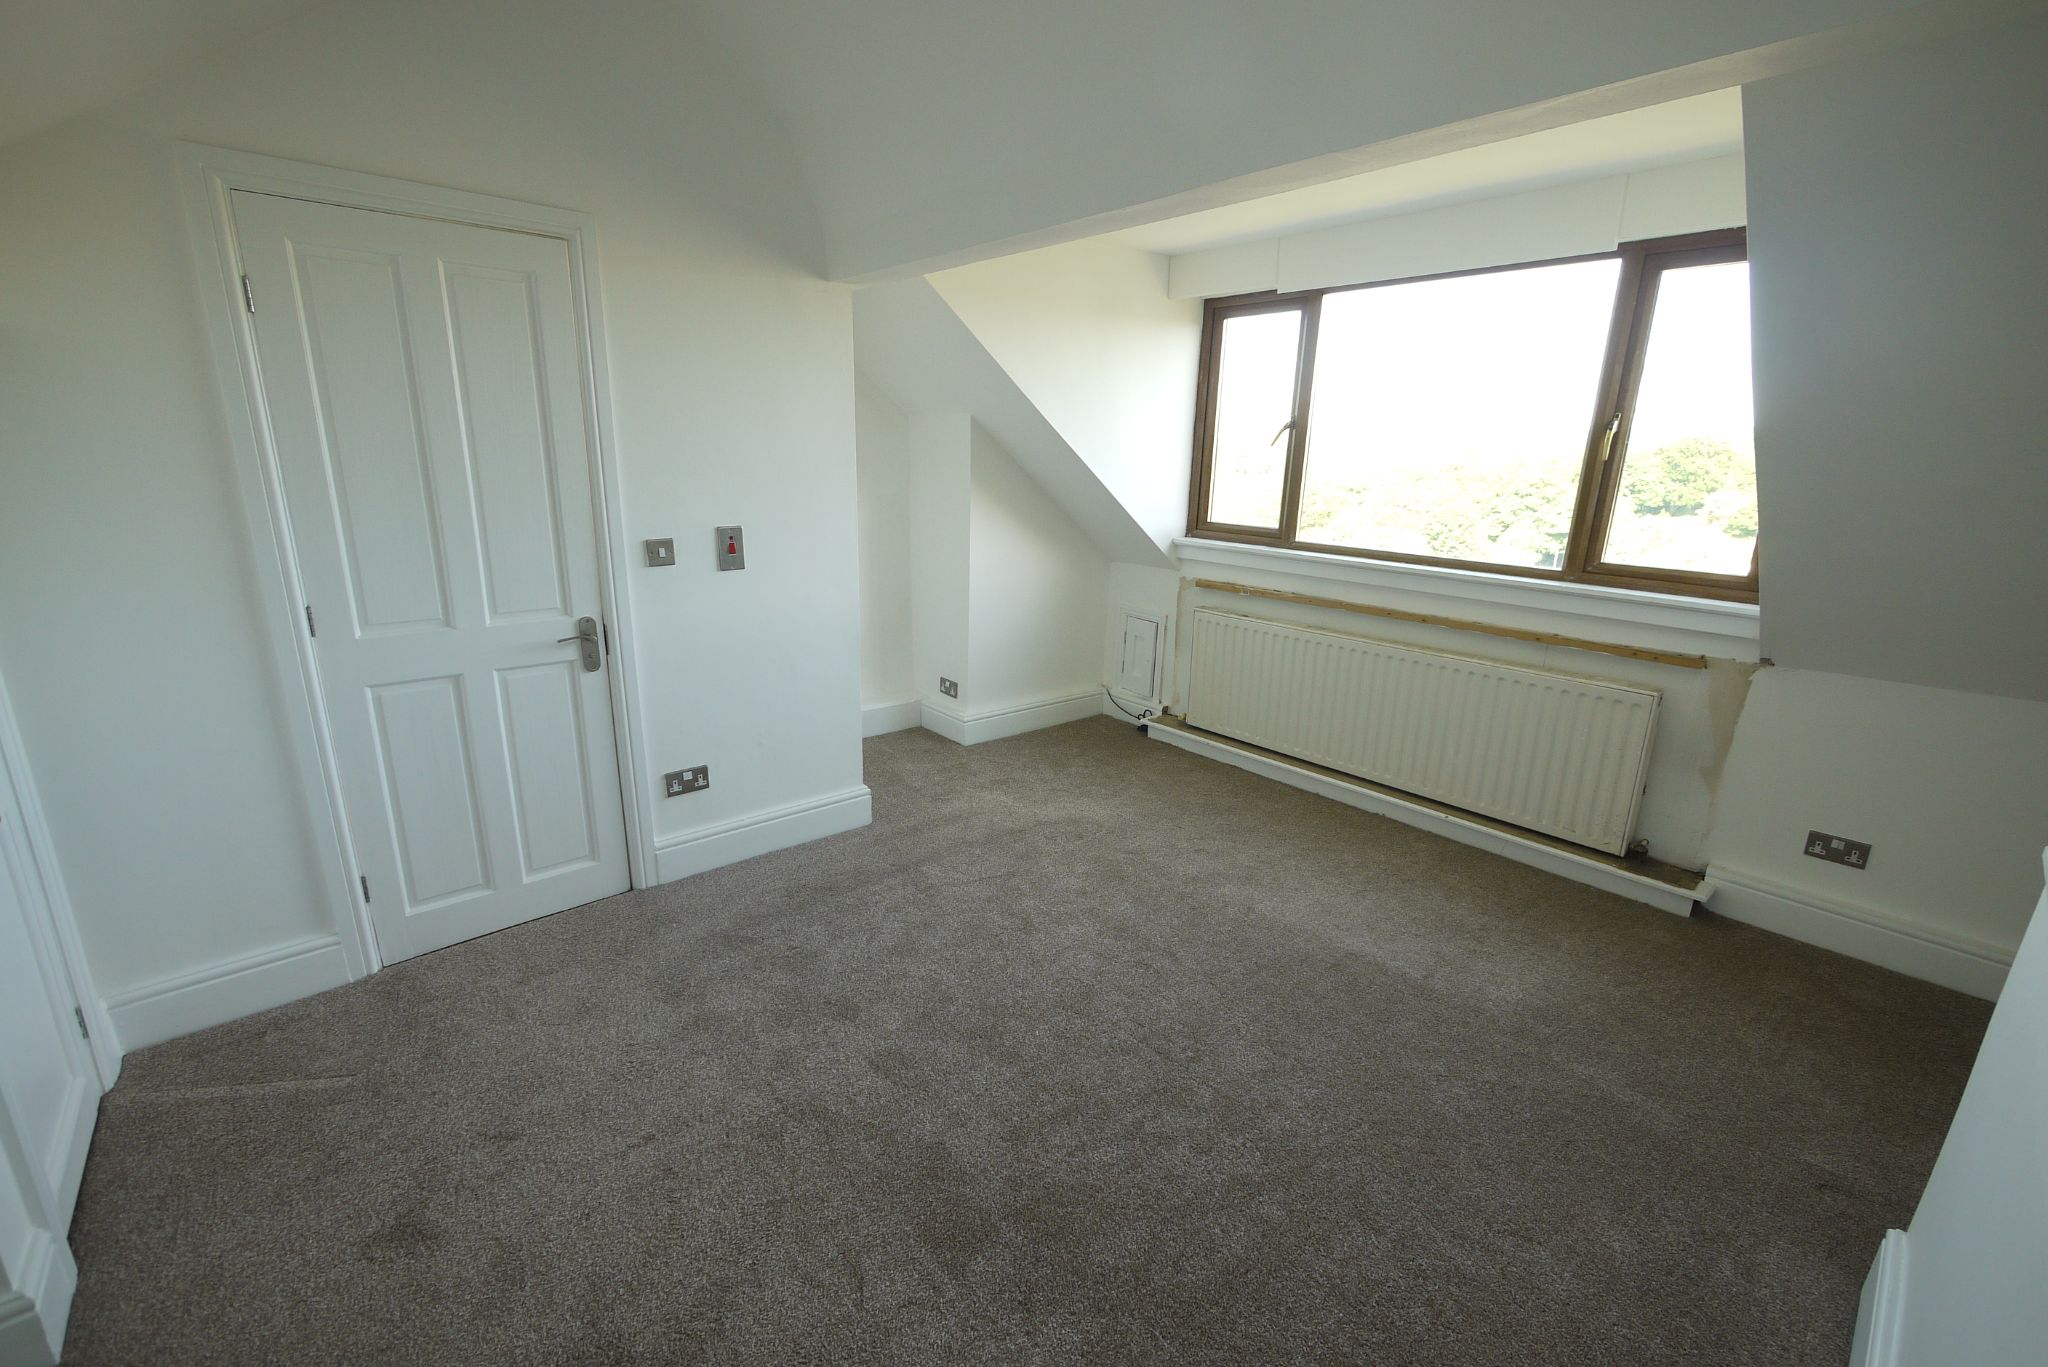 3 bedroom mid terraced house SSTC in Bradford - Photograph 8.